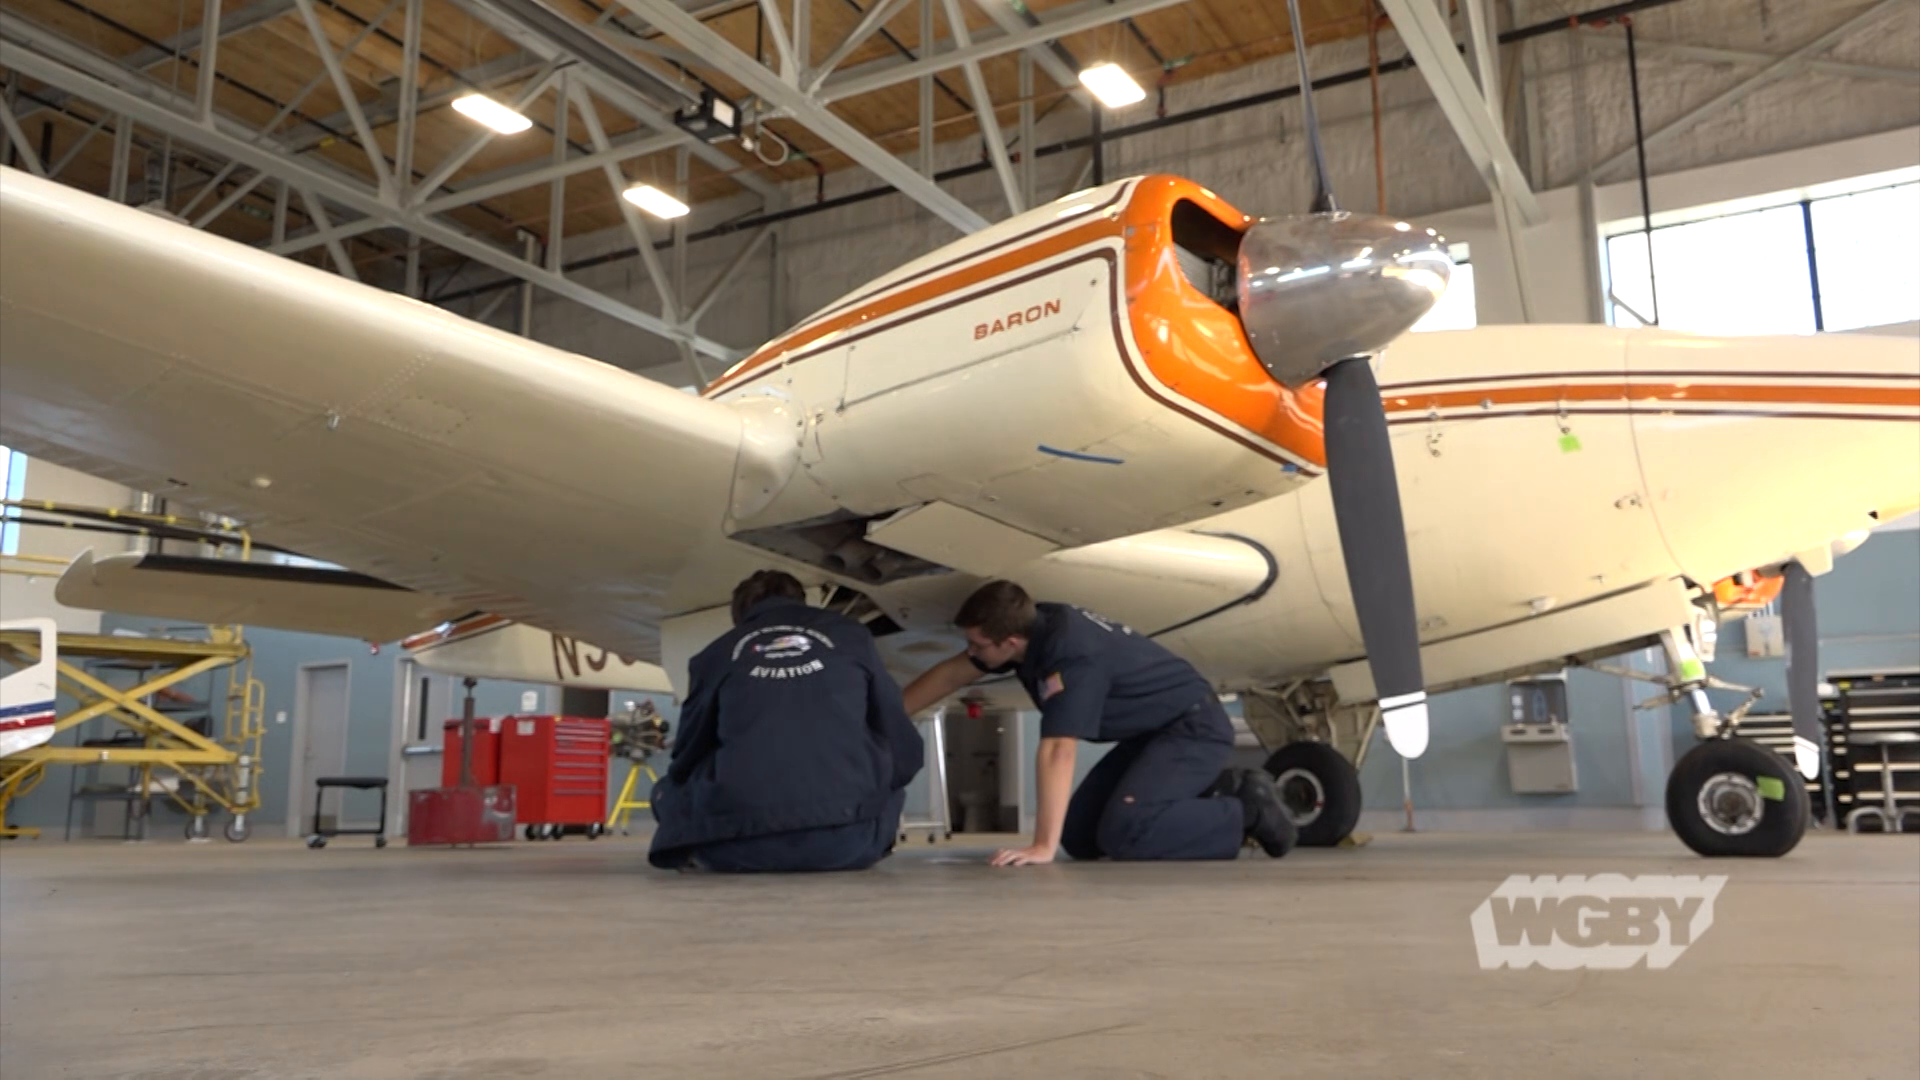 Graduates of the Westfield Technical Academy Aviation Program receive hands-on-training and an FAA certification that allows them to work on aircraft.